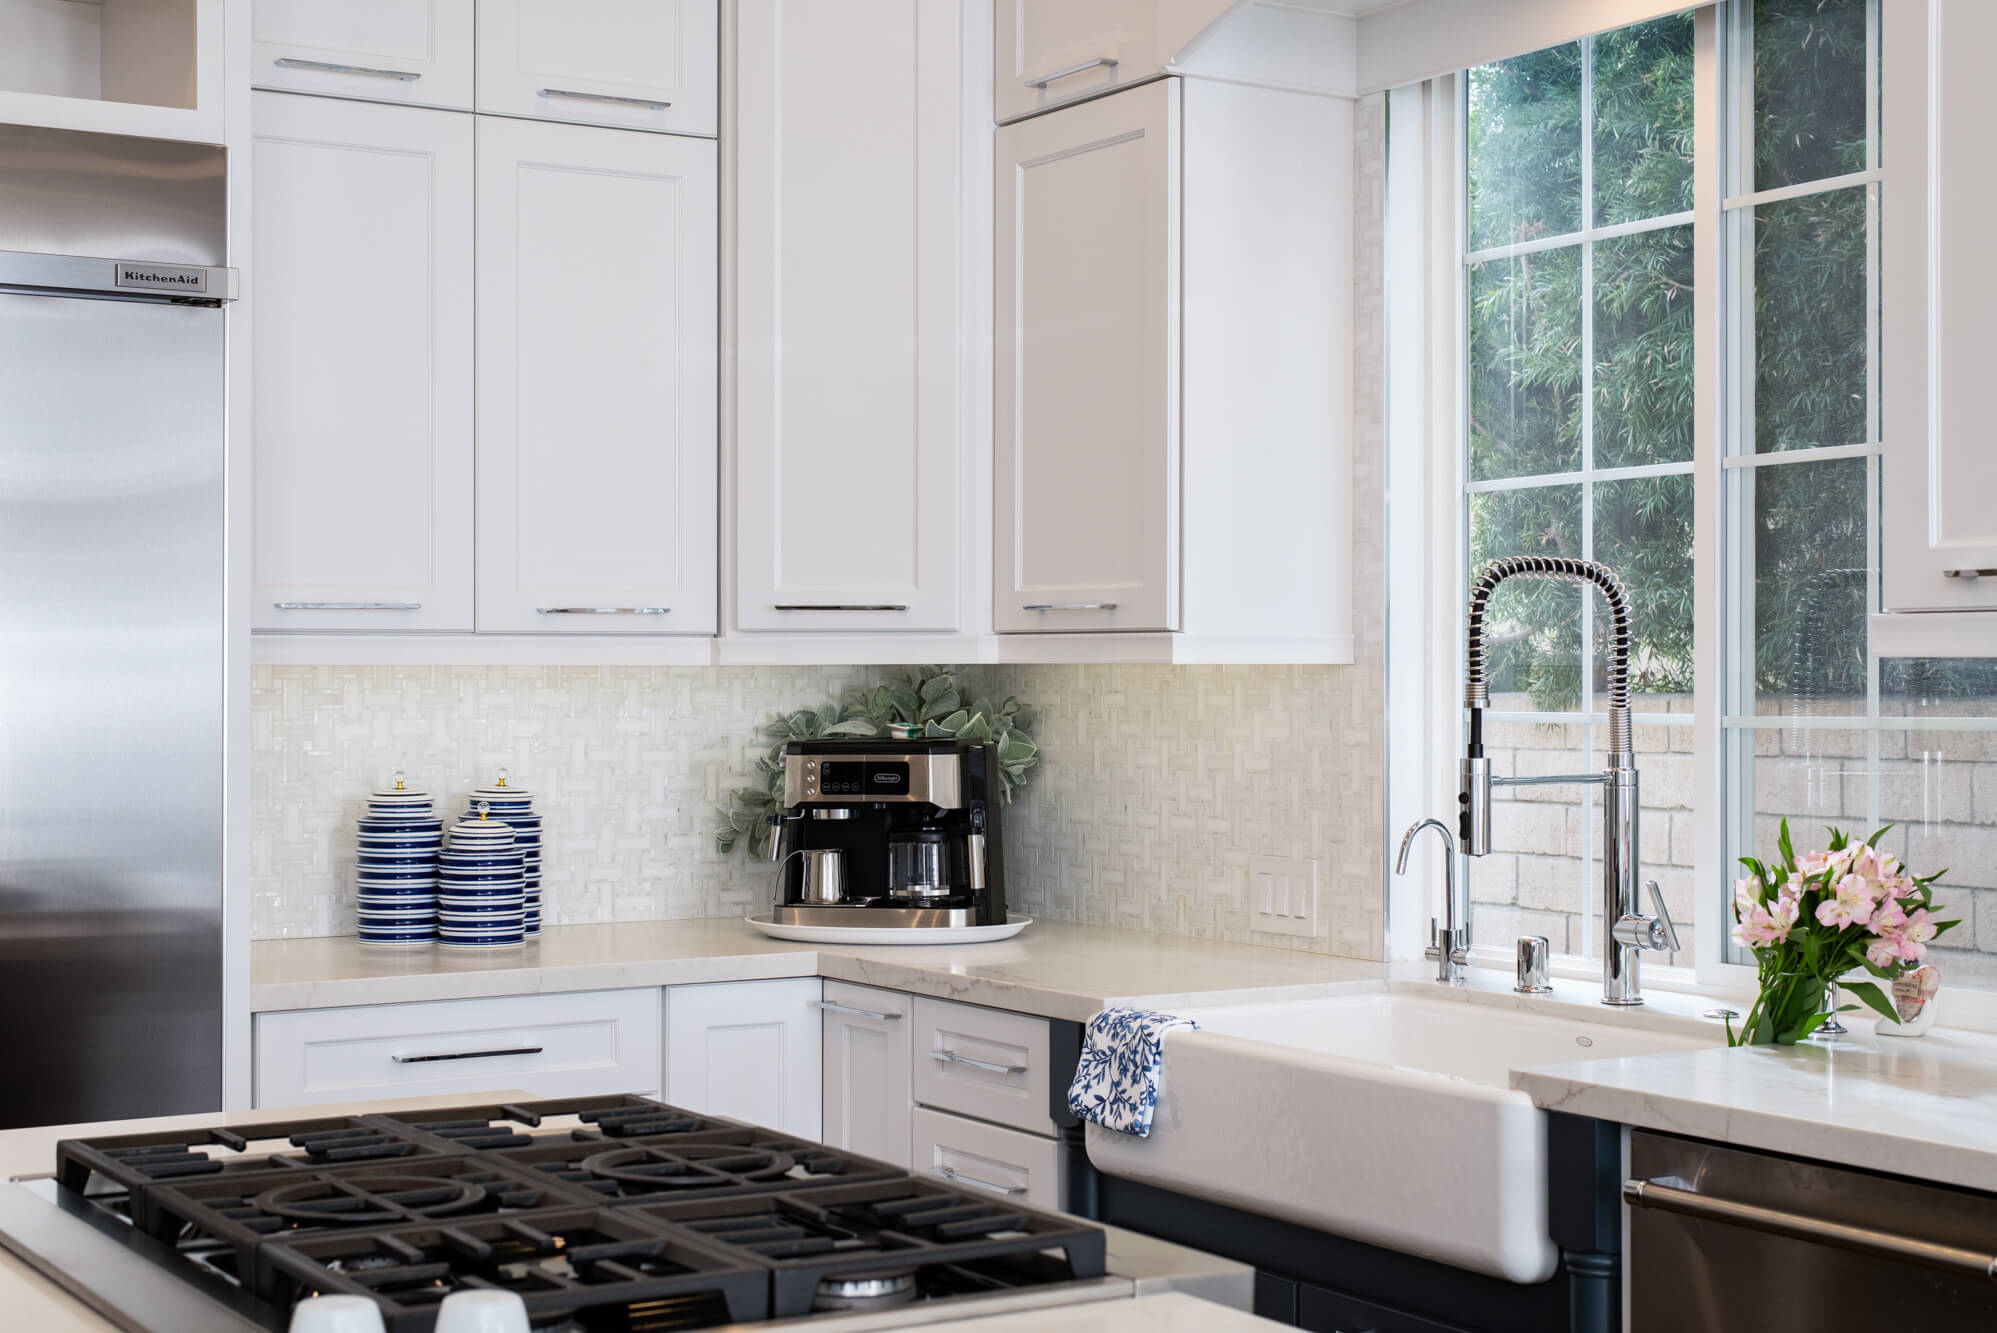 Shaker-style-cabinets-with-easy-maintenance-for-timeless-kitchen-design